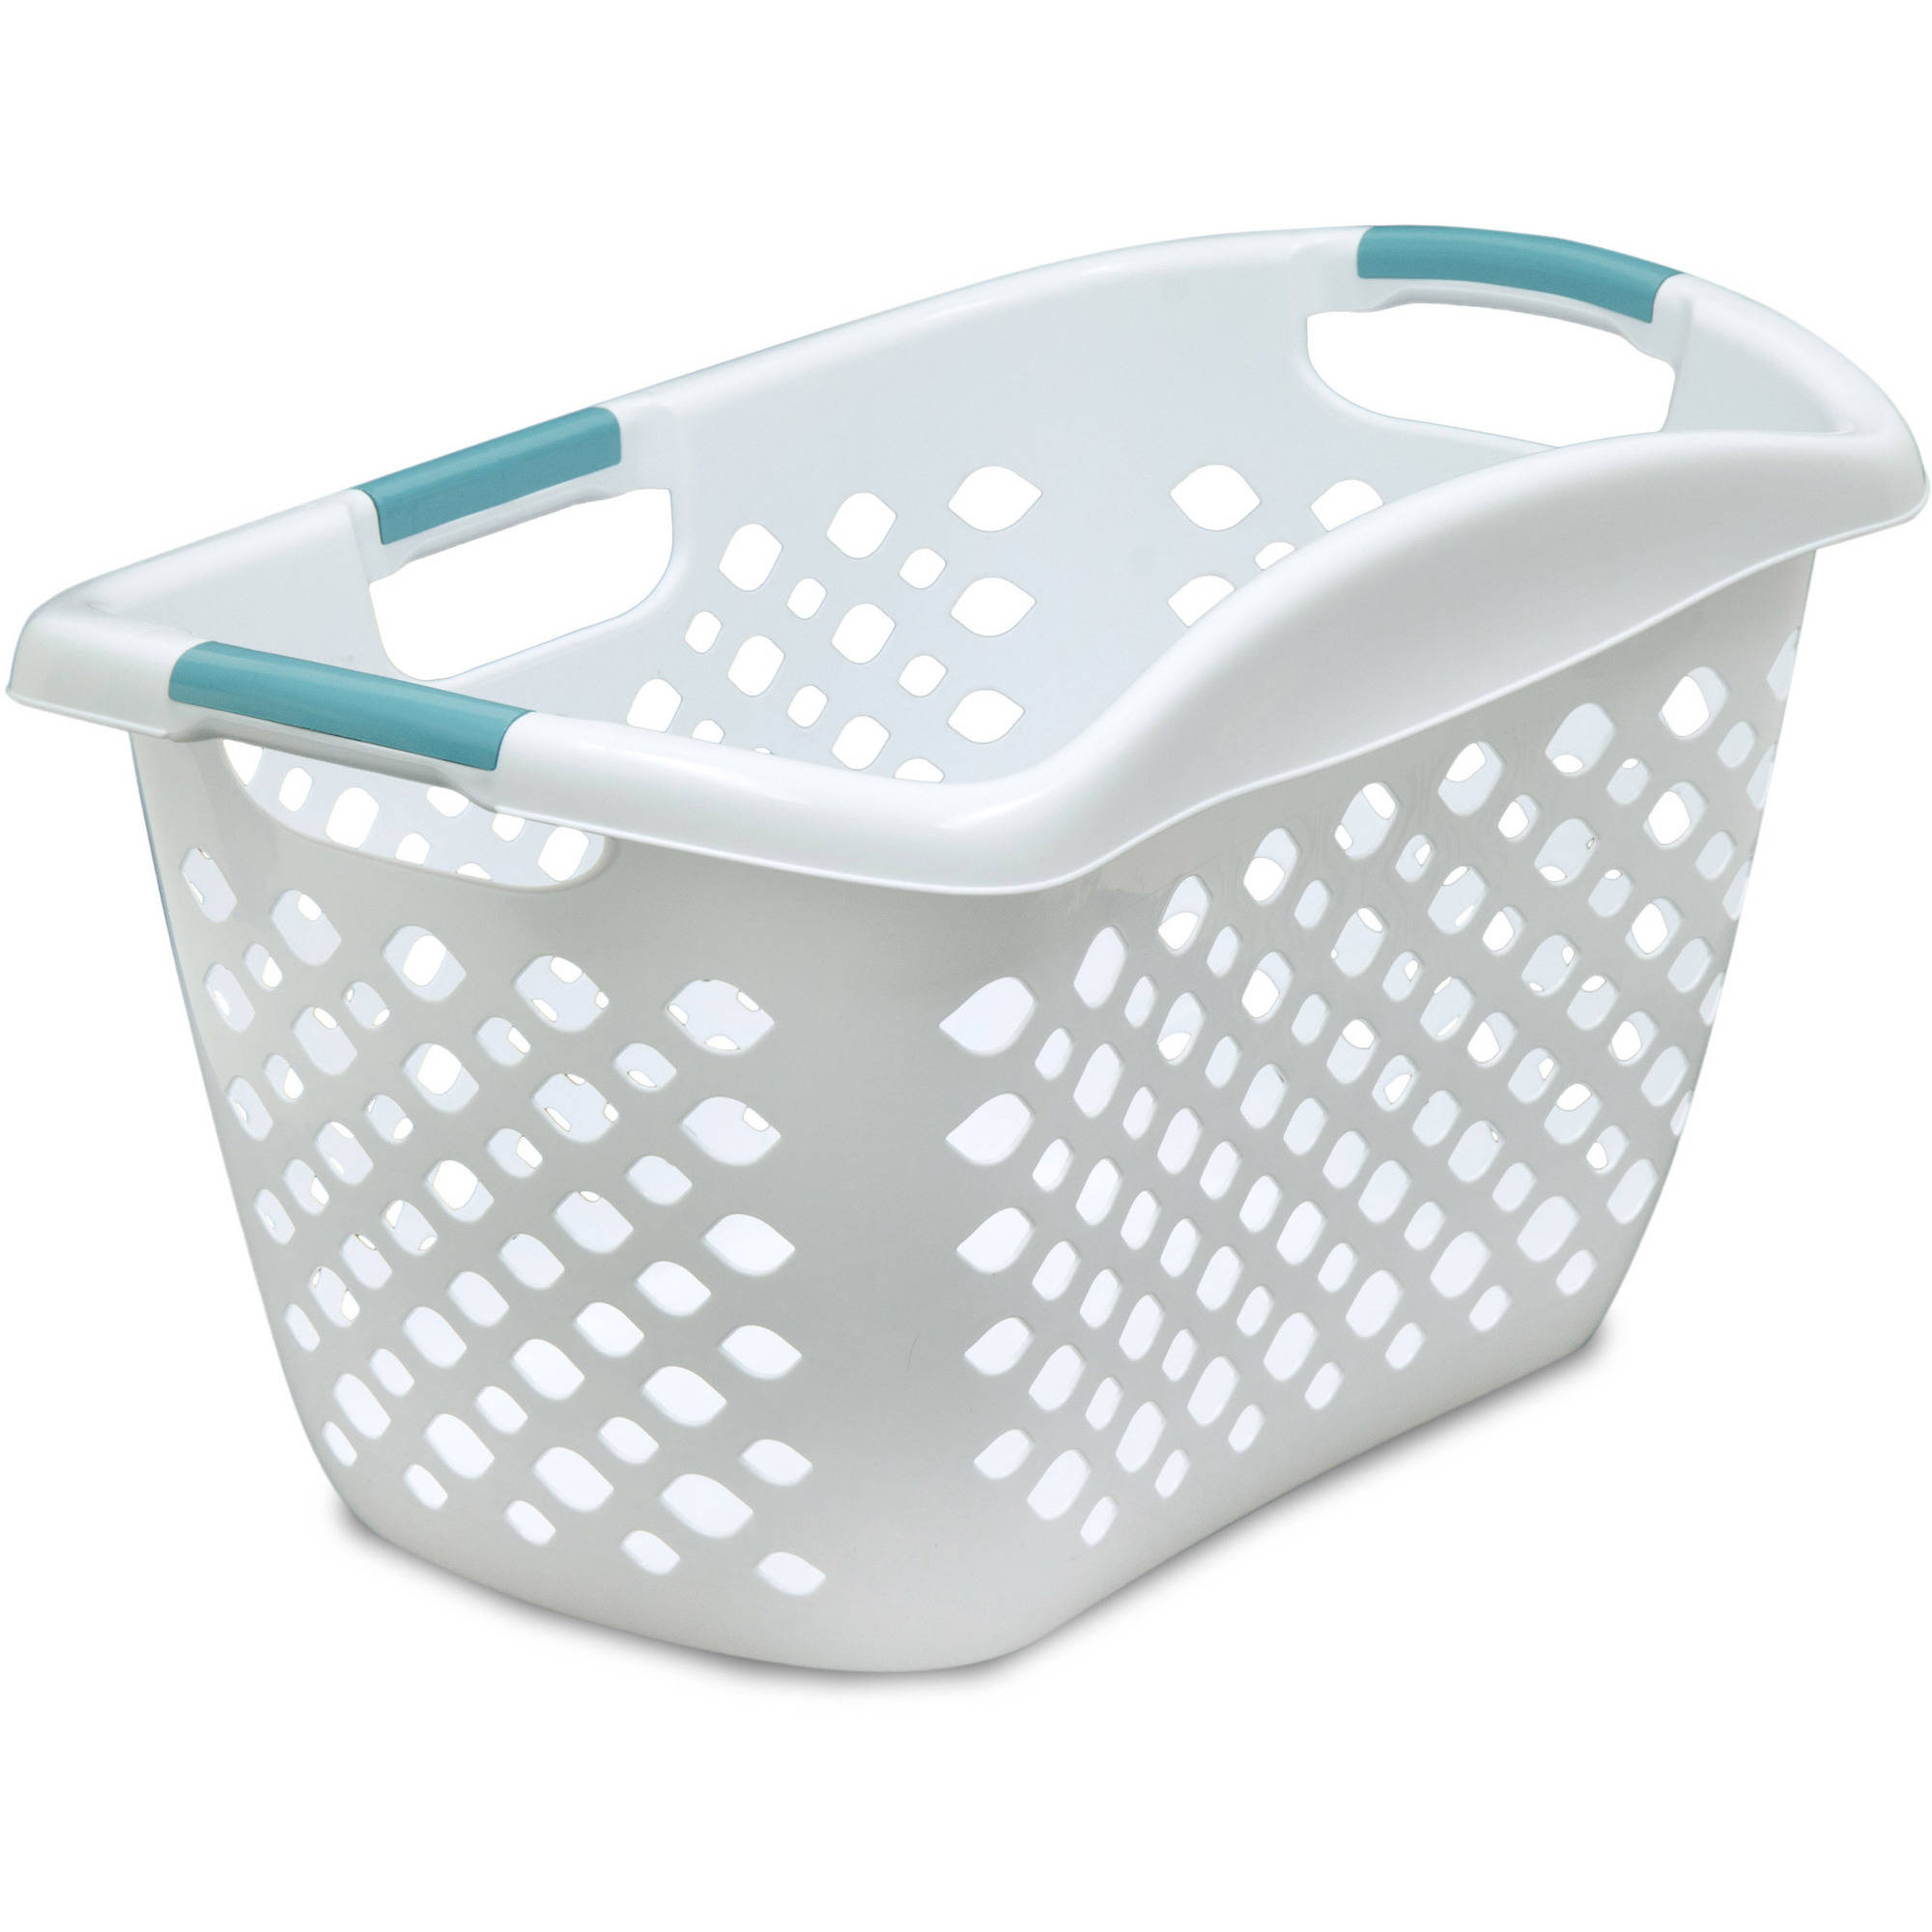 Home Logic 1.8-Bu Large Capacity HIP GRIP Laundry Basket